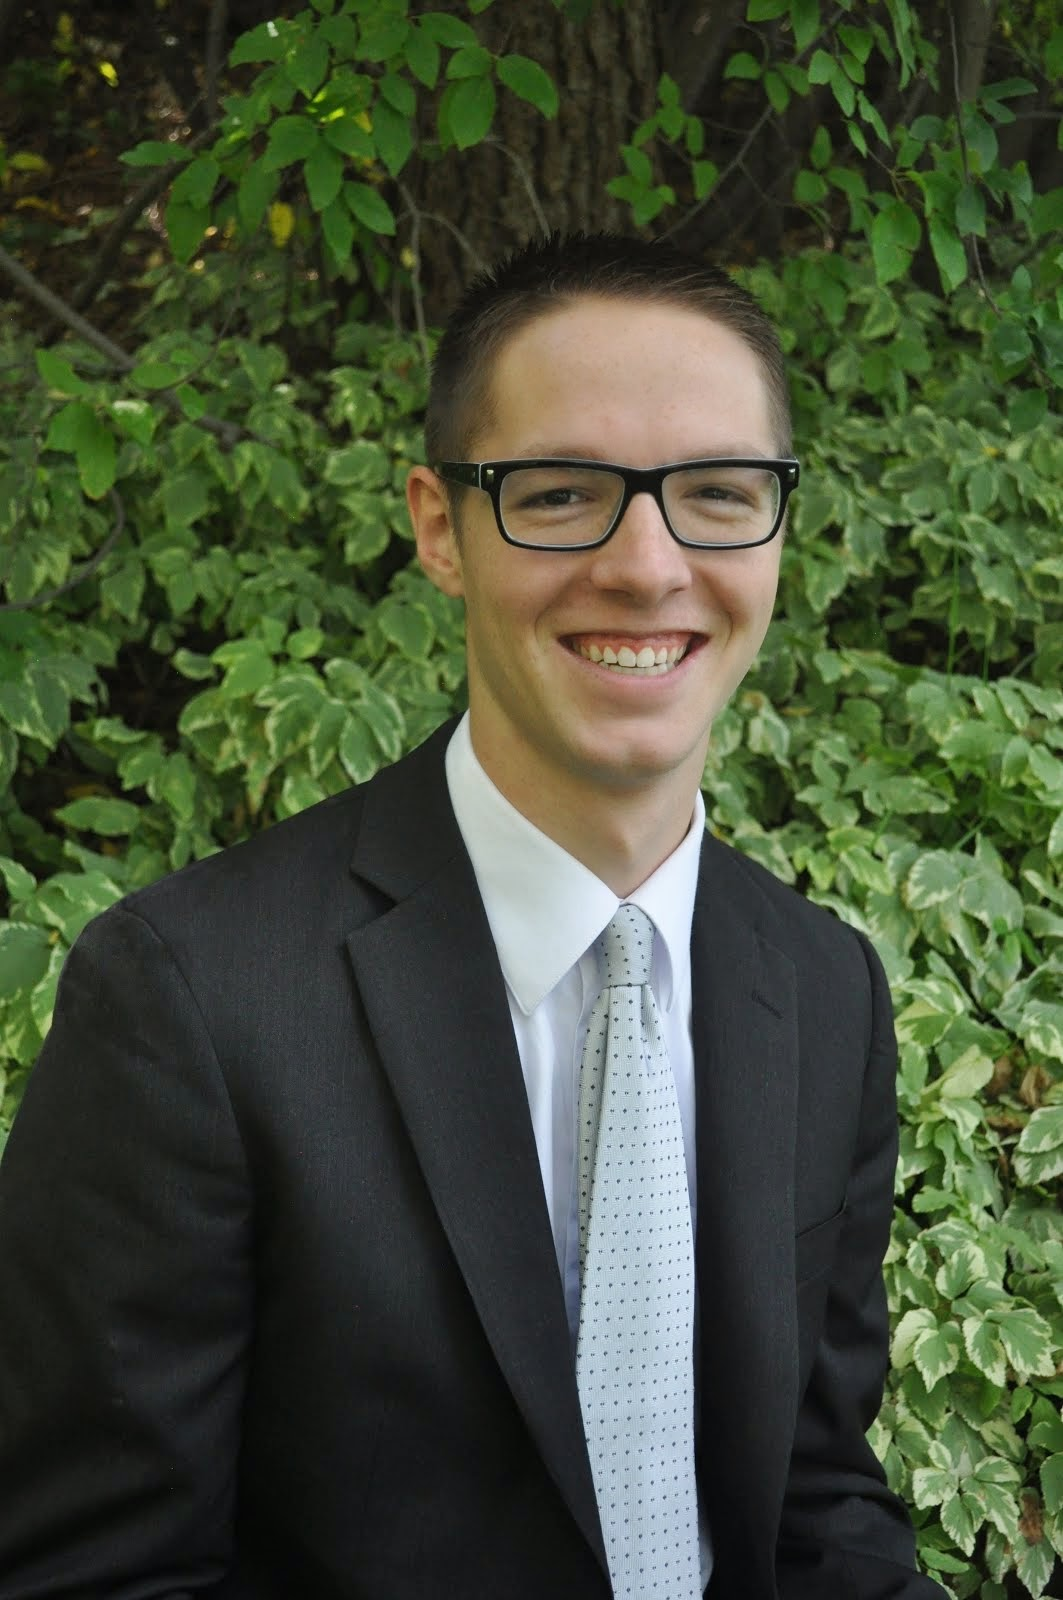 Elder Bryce Jared Bingham